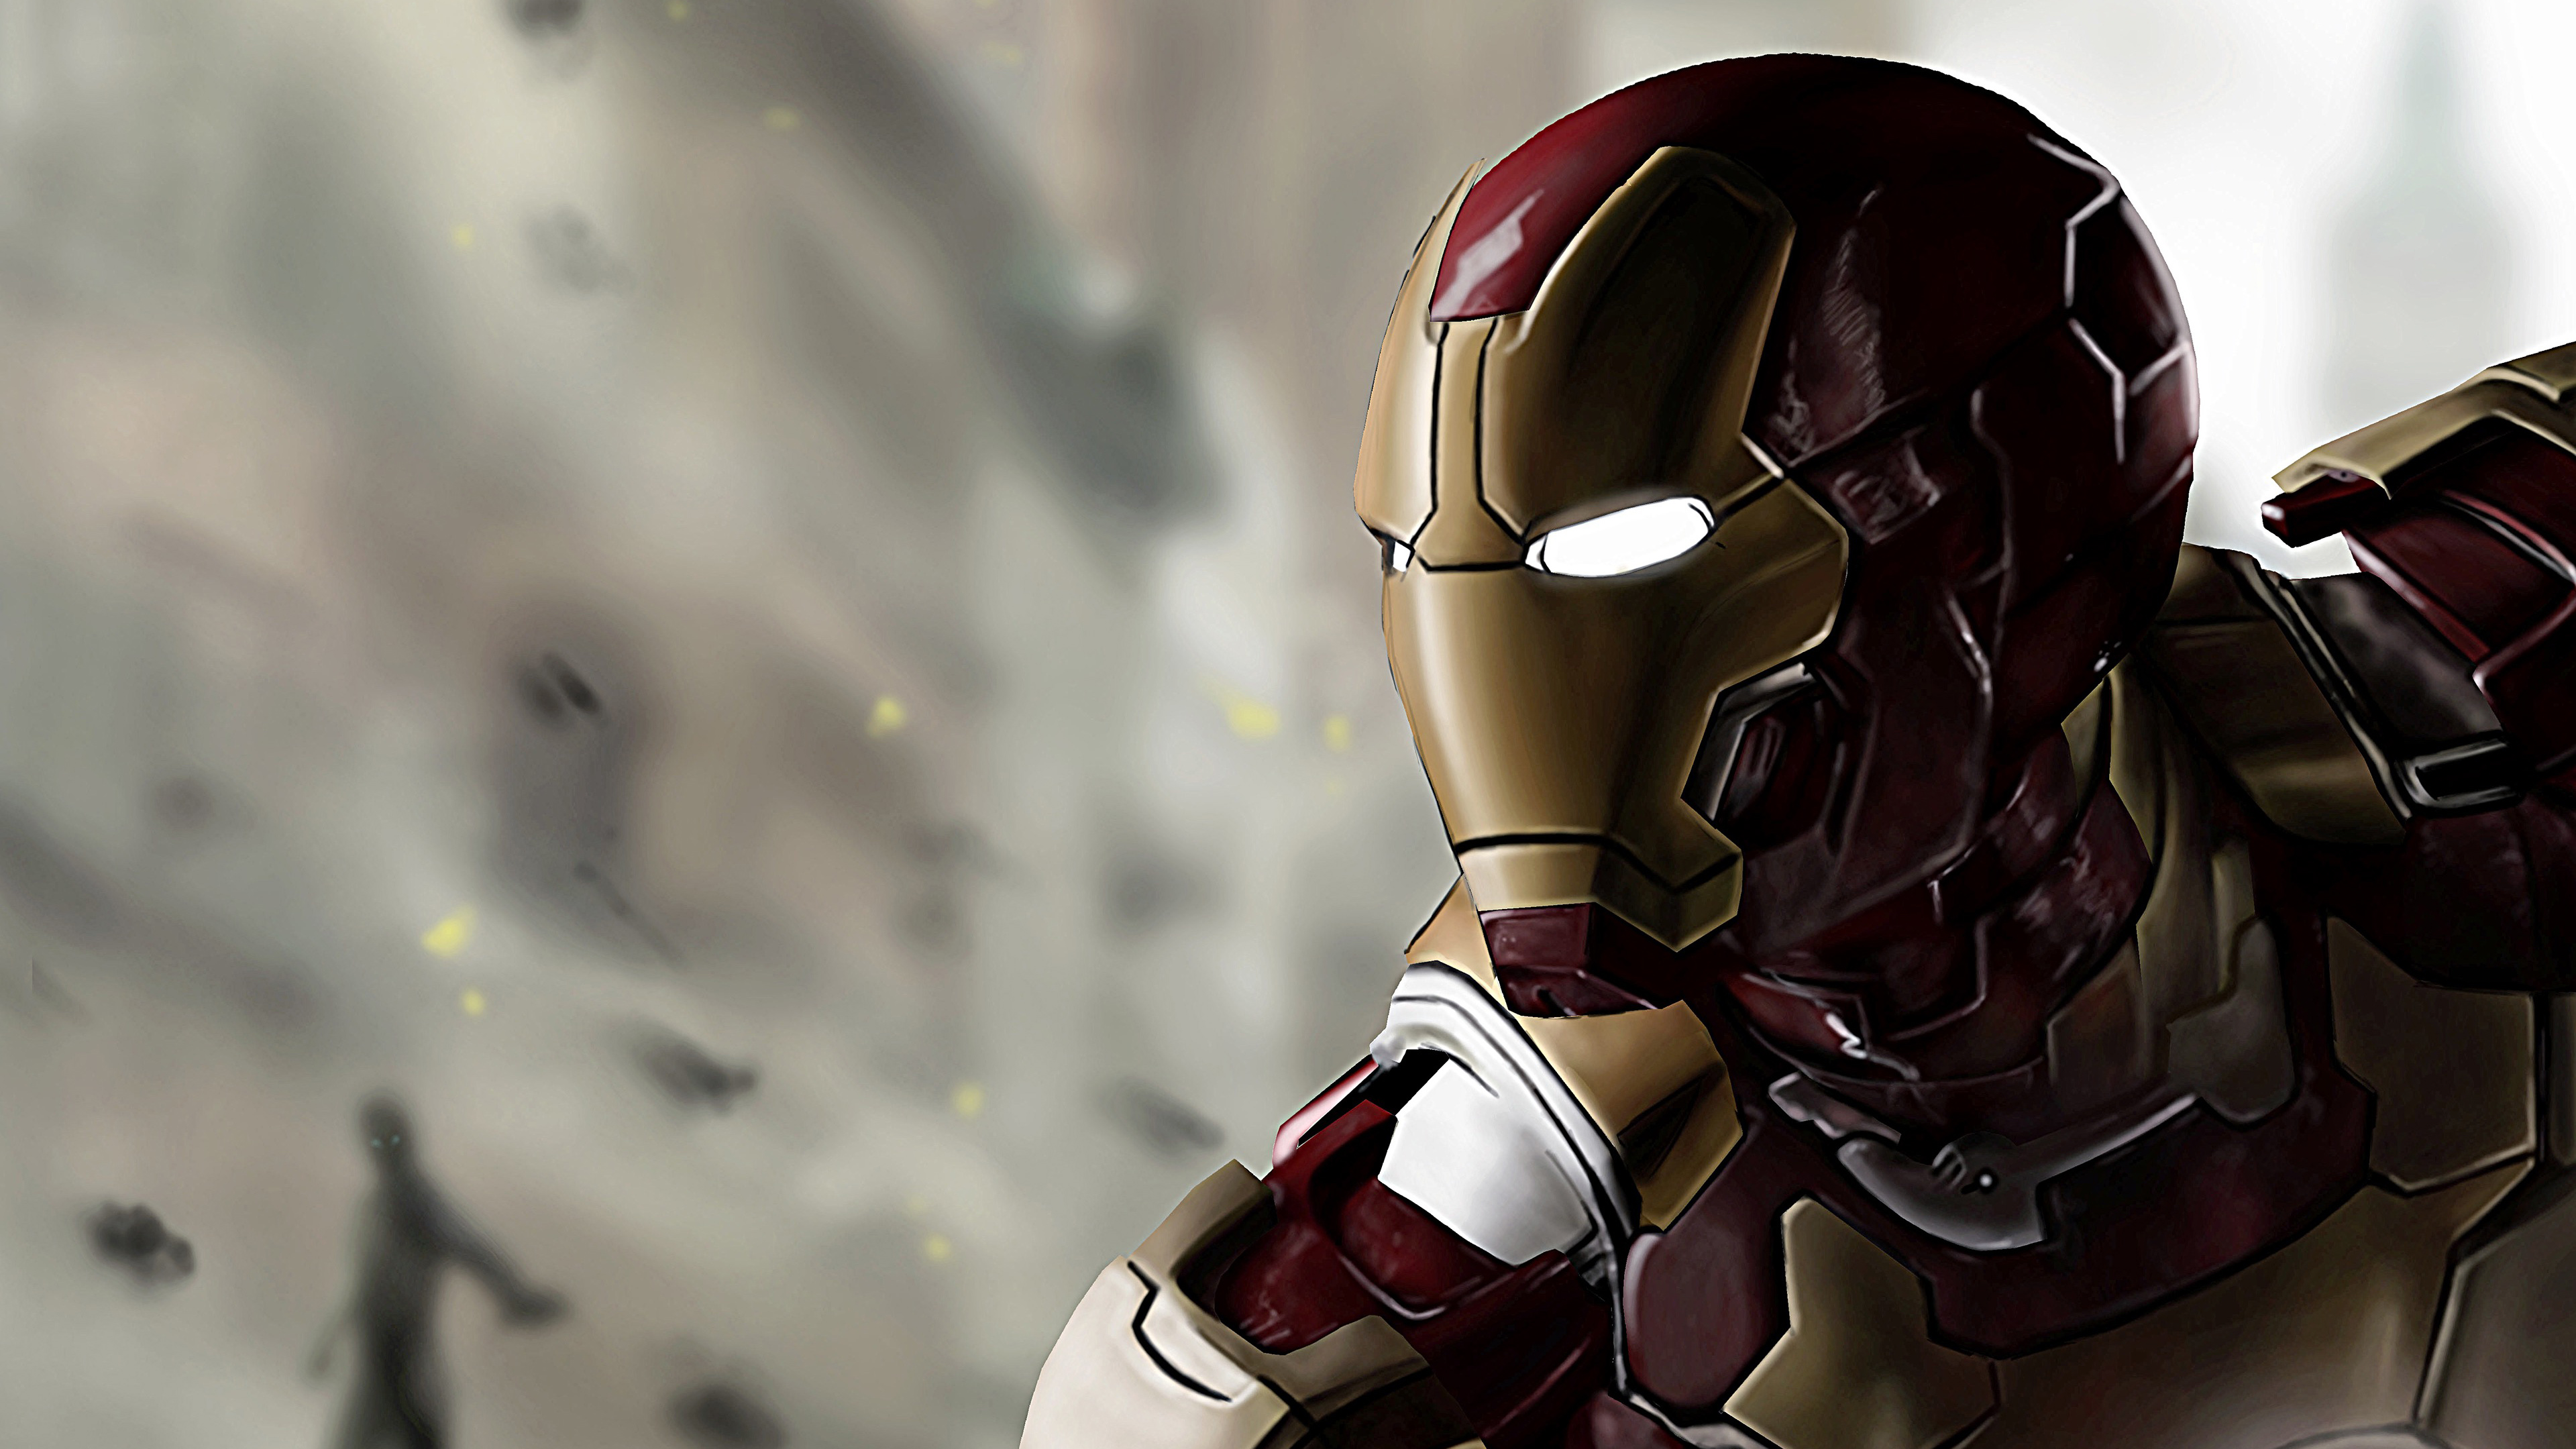 3840x2400 iron man in avengers age of ultron 4k hd 4k wallpapers images backgrounds photos - Iron man wallpaper 4k ...